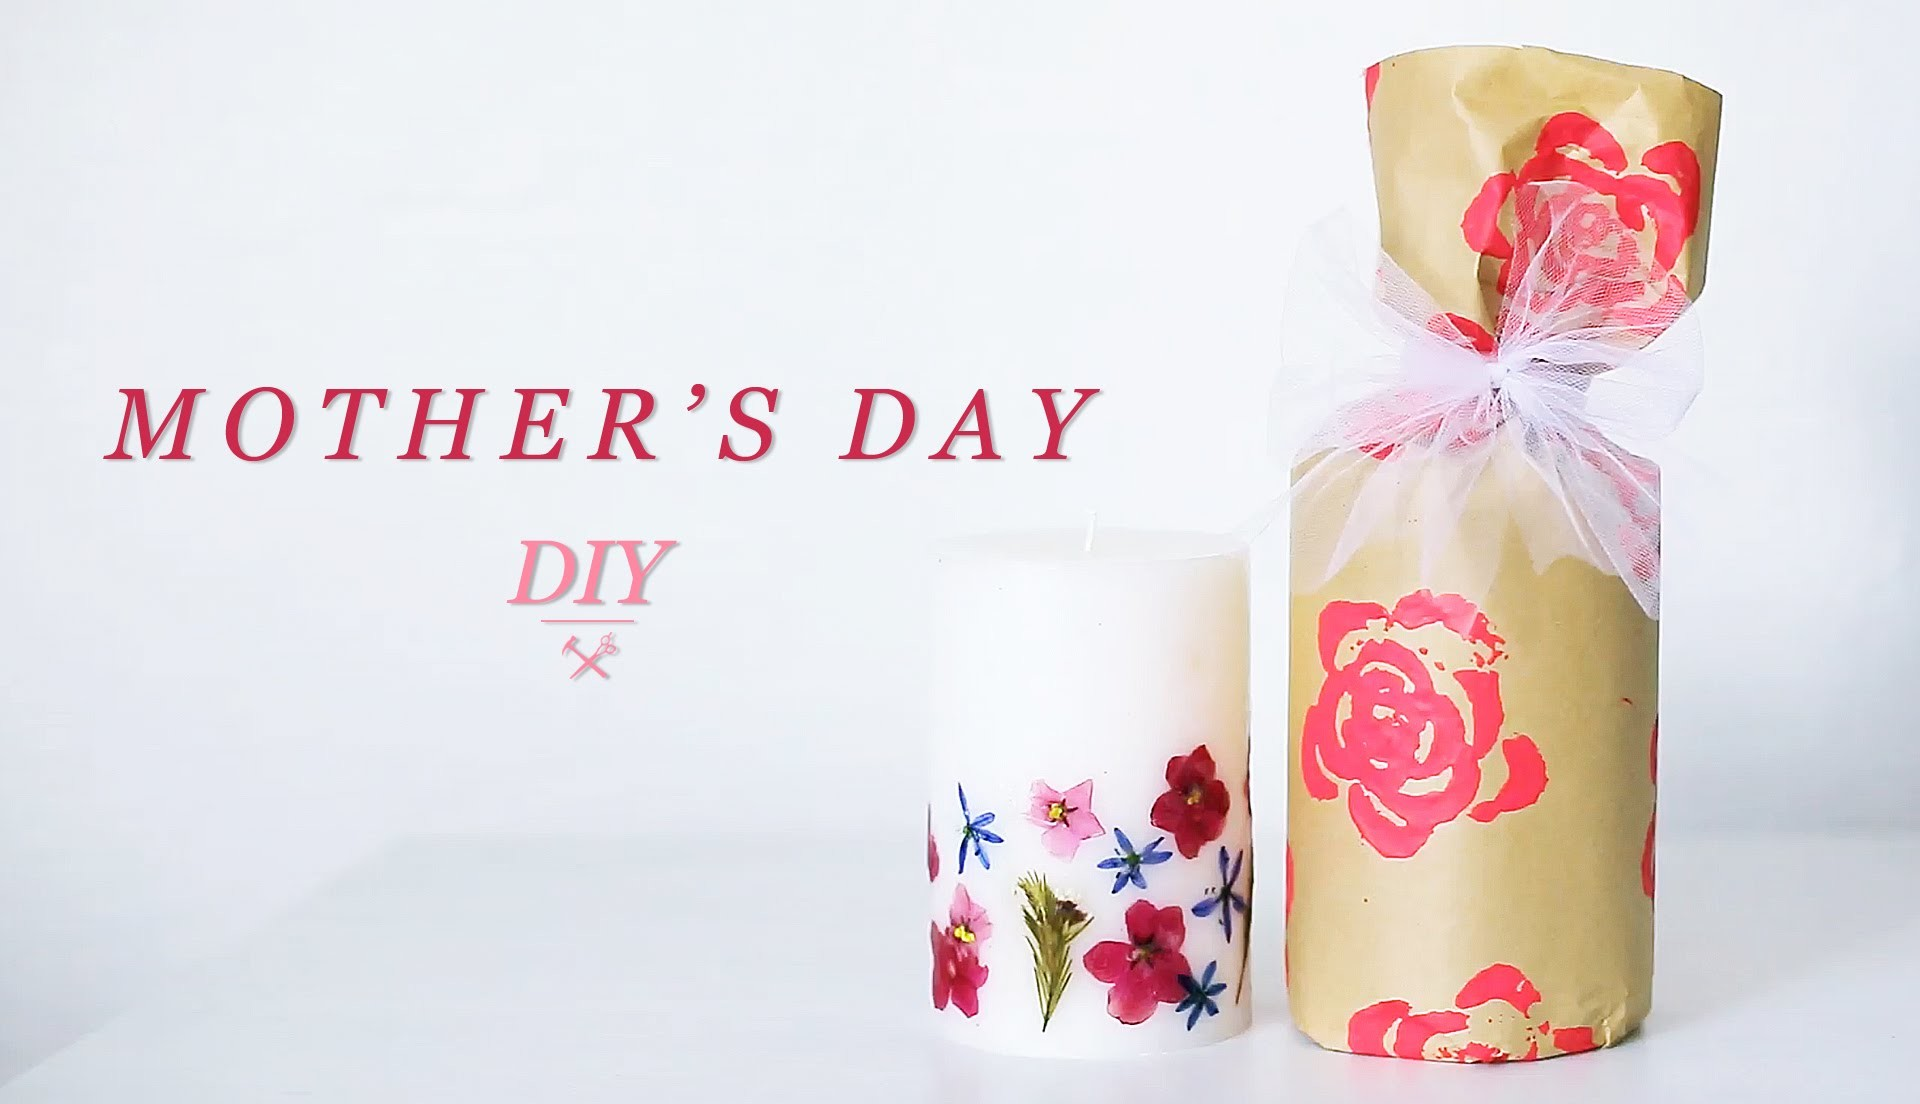 DIY MOTHER'S DAY GIFT | CANDLE & WRAPPING